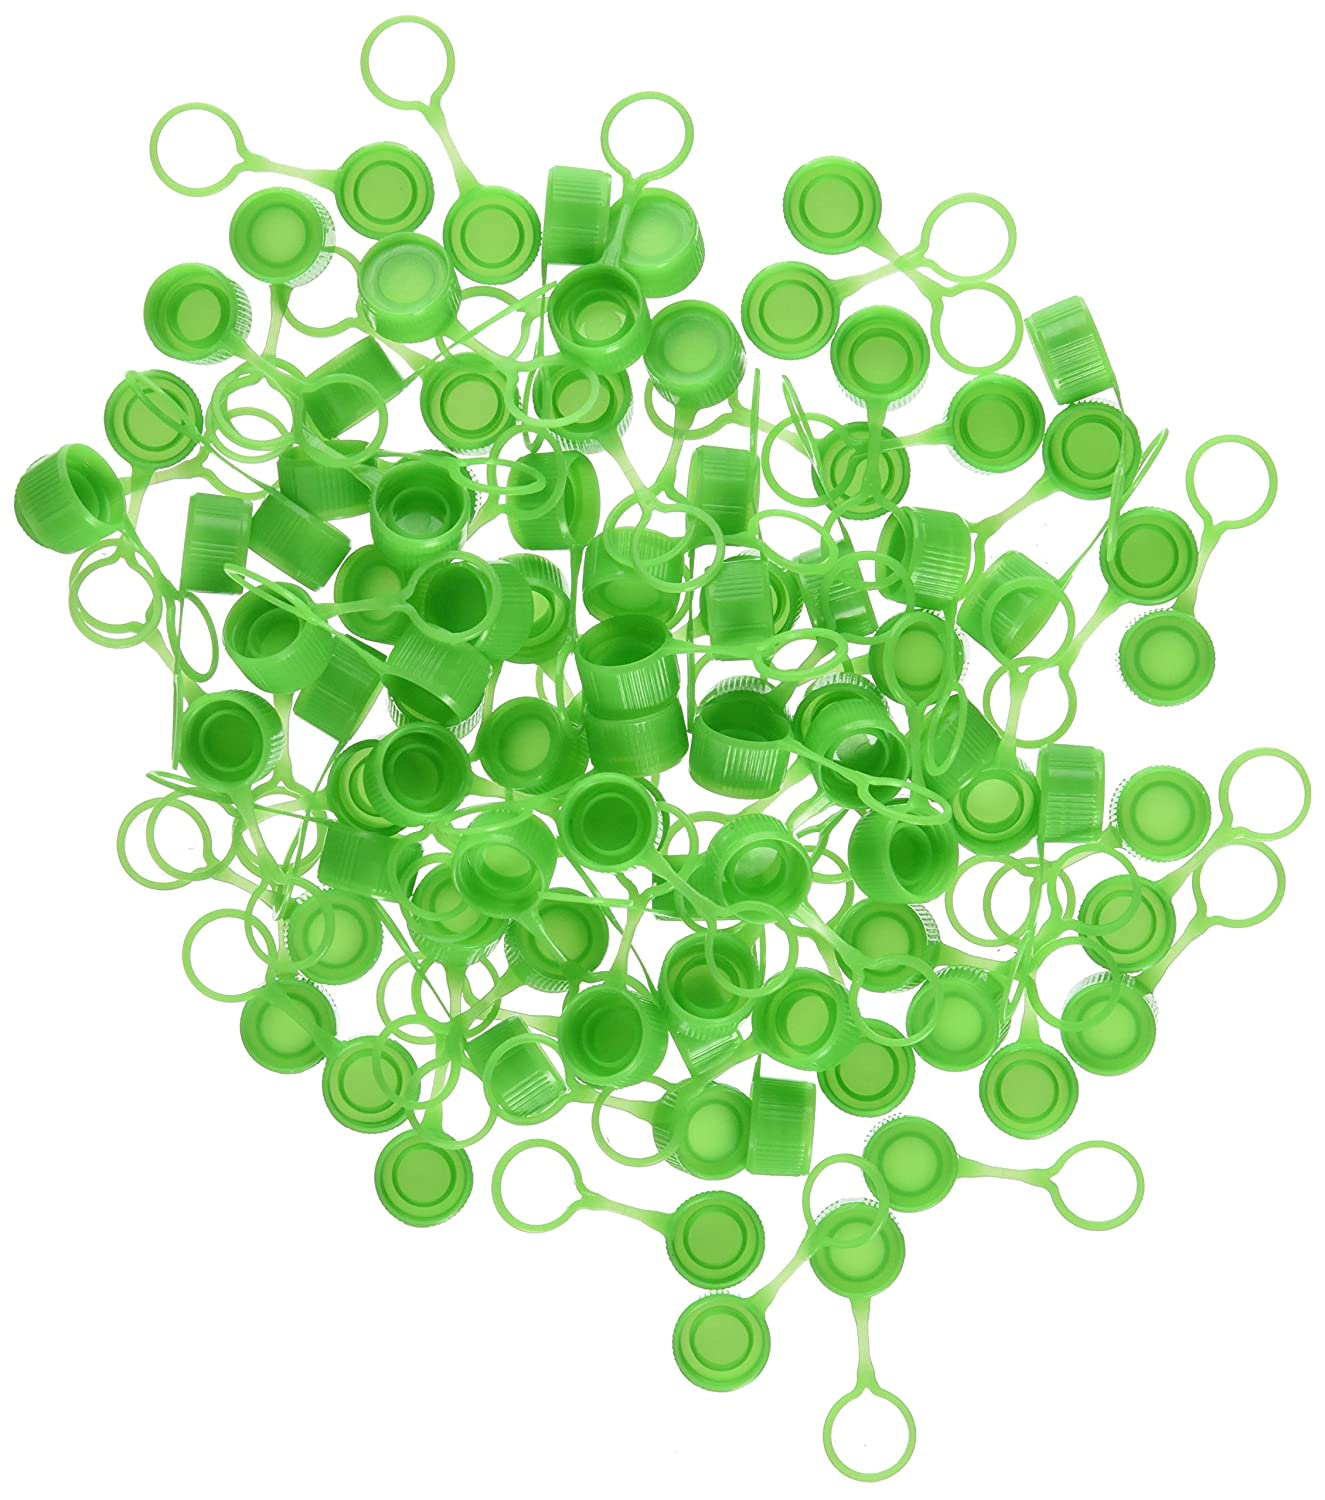 Neolab 7/Die Screw Caps with Ring/ Pack of 1000 /Green